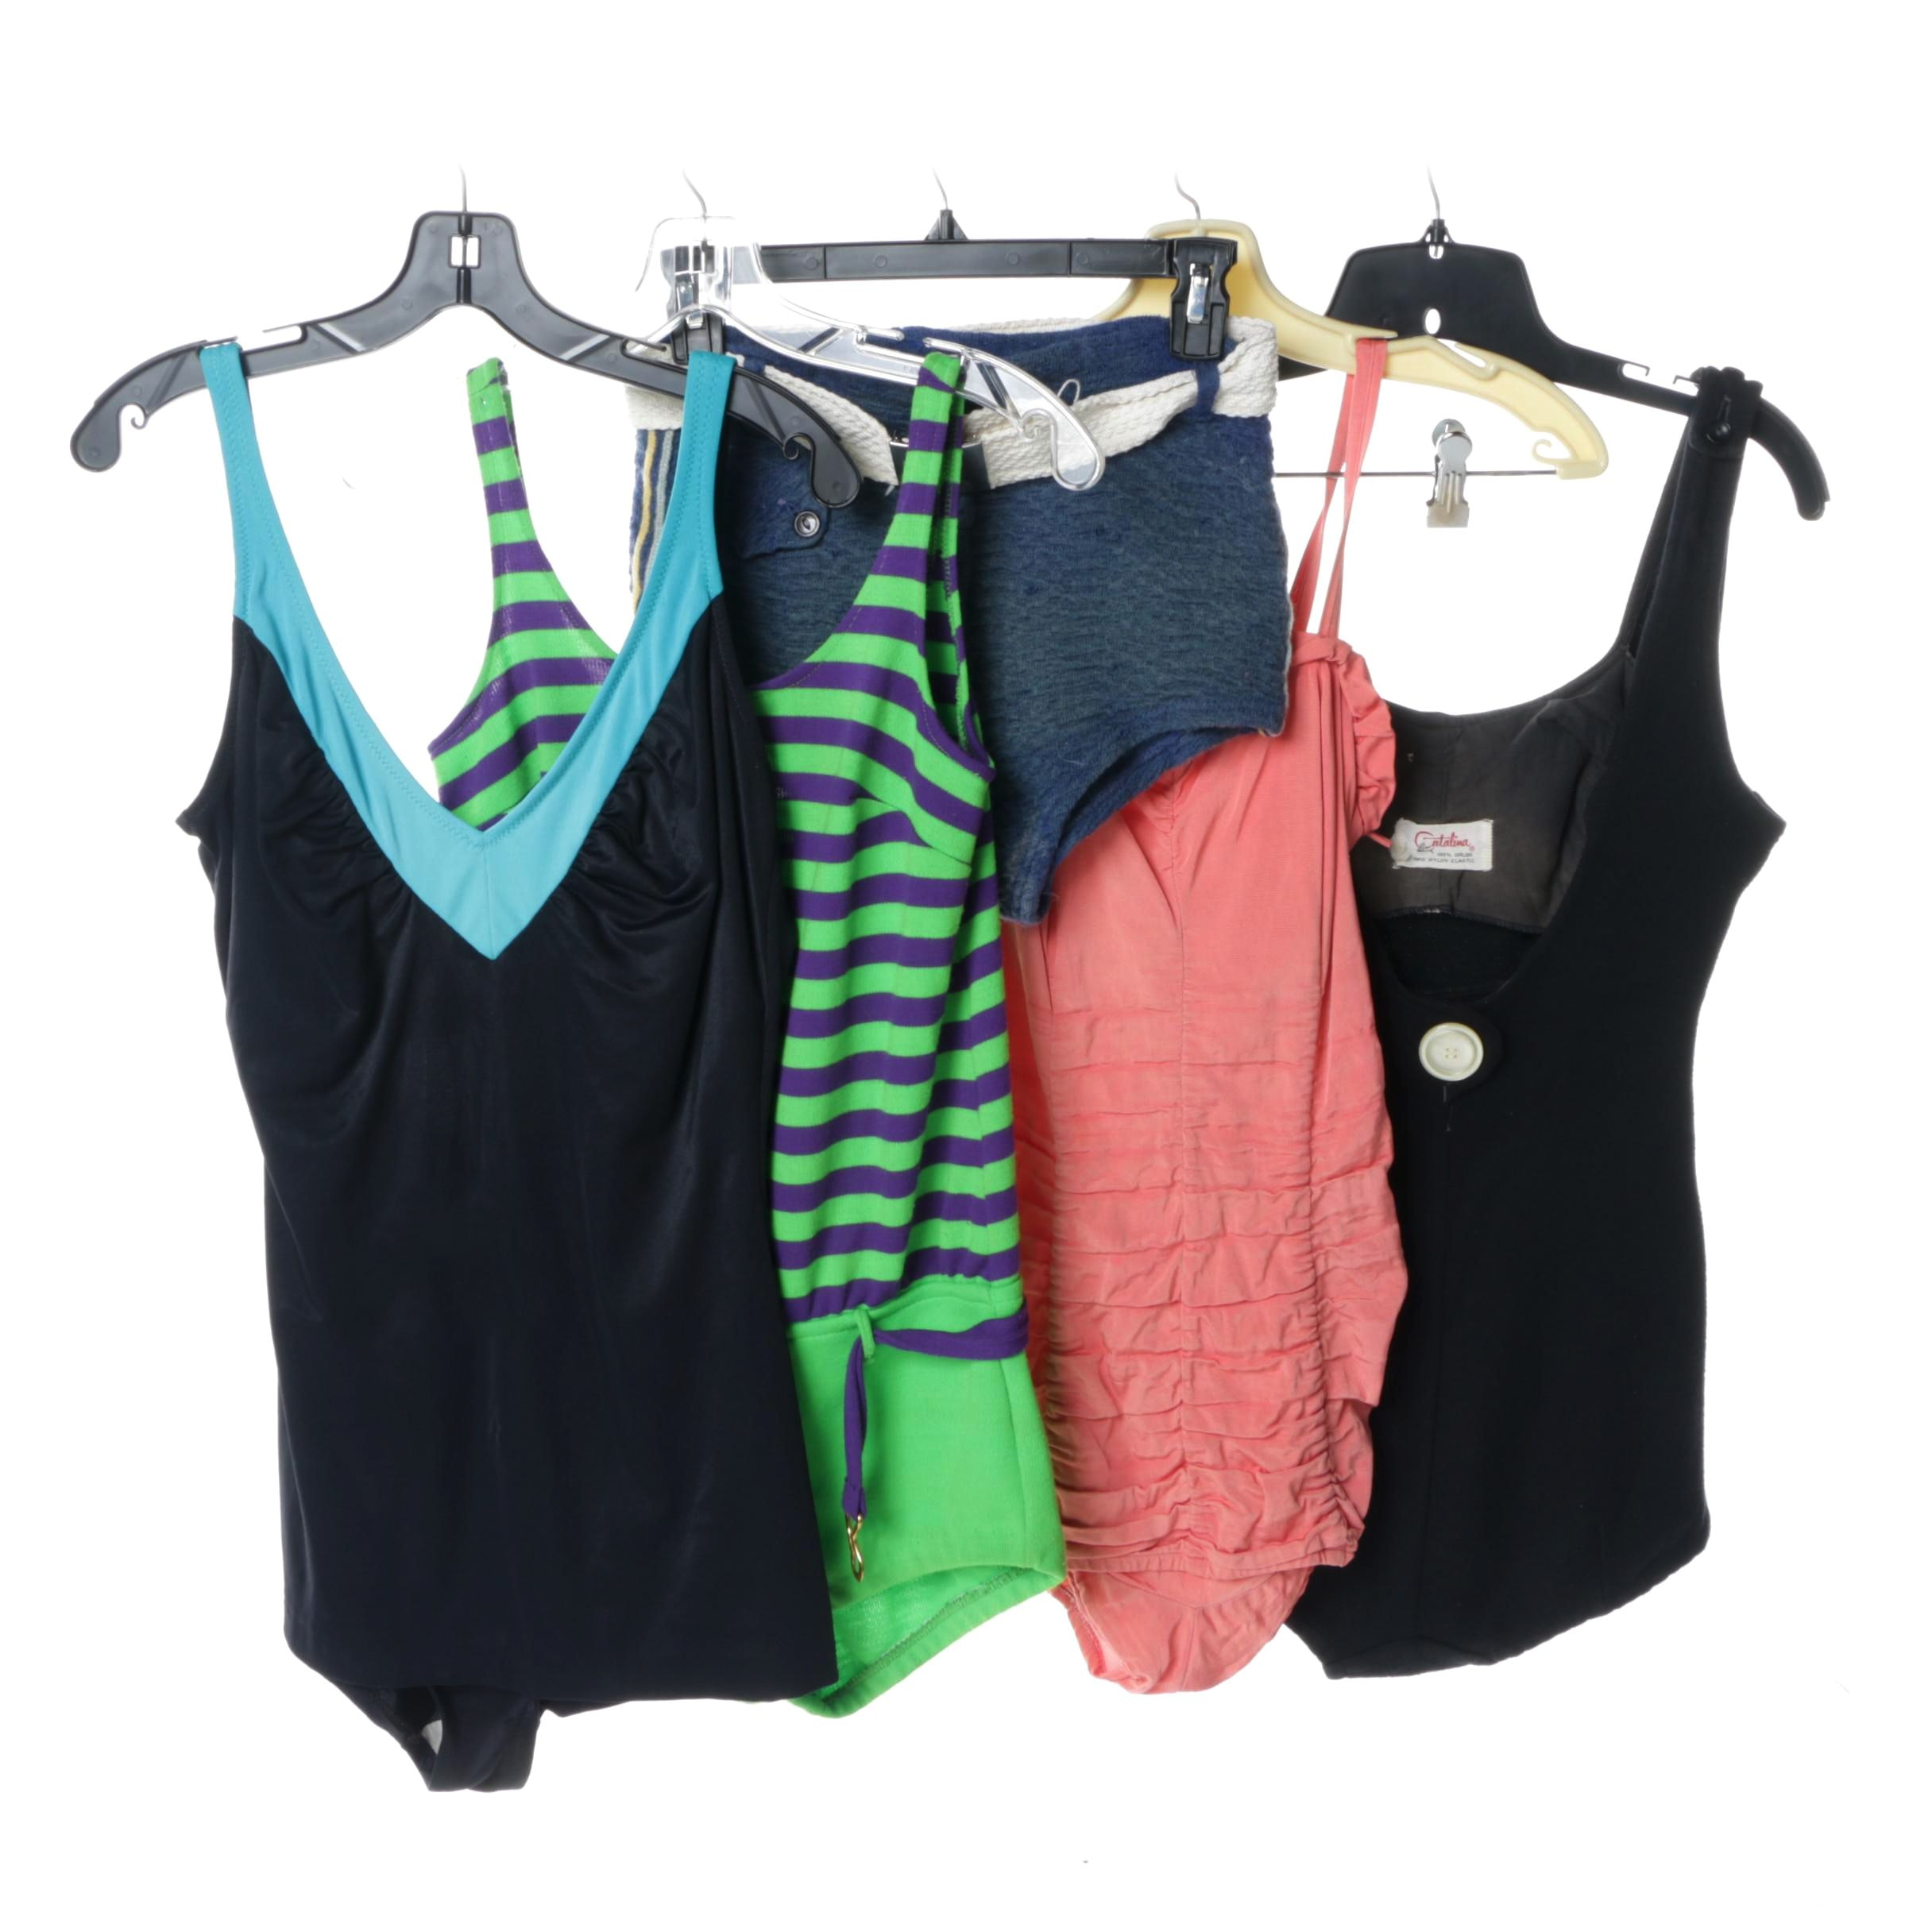 Women's Vintage Swimsuits Including Catalina